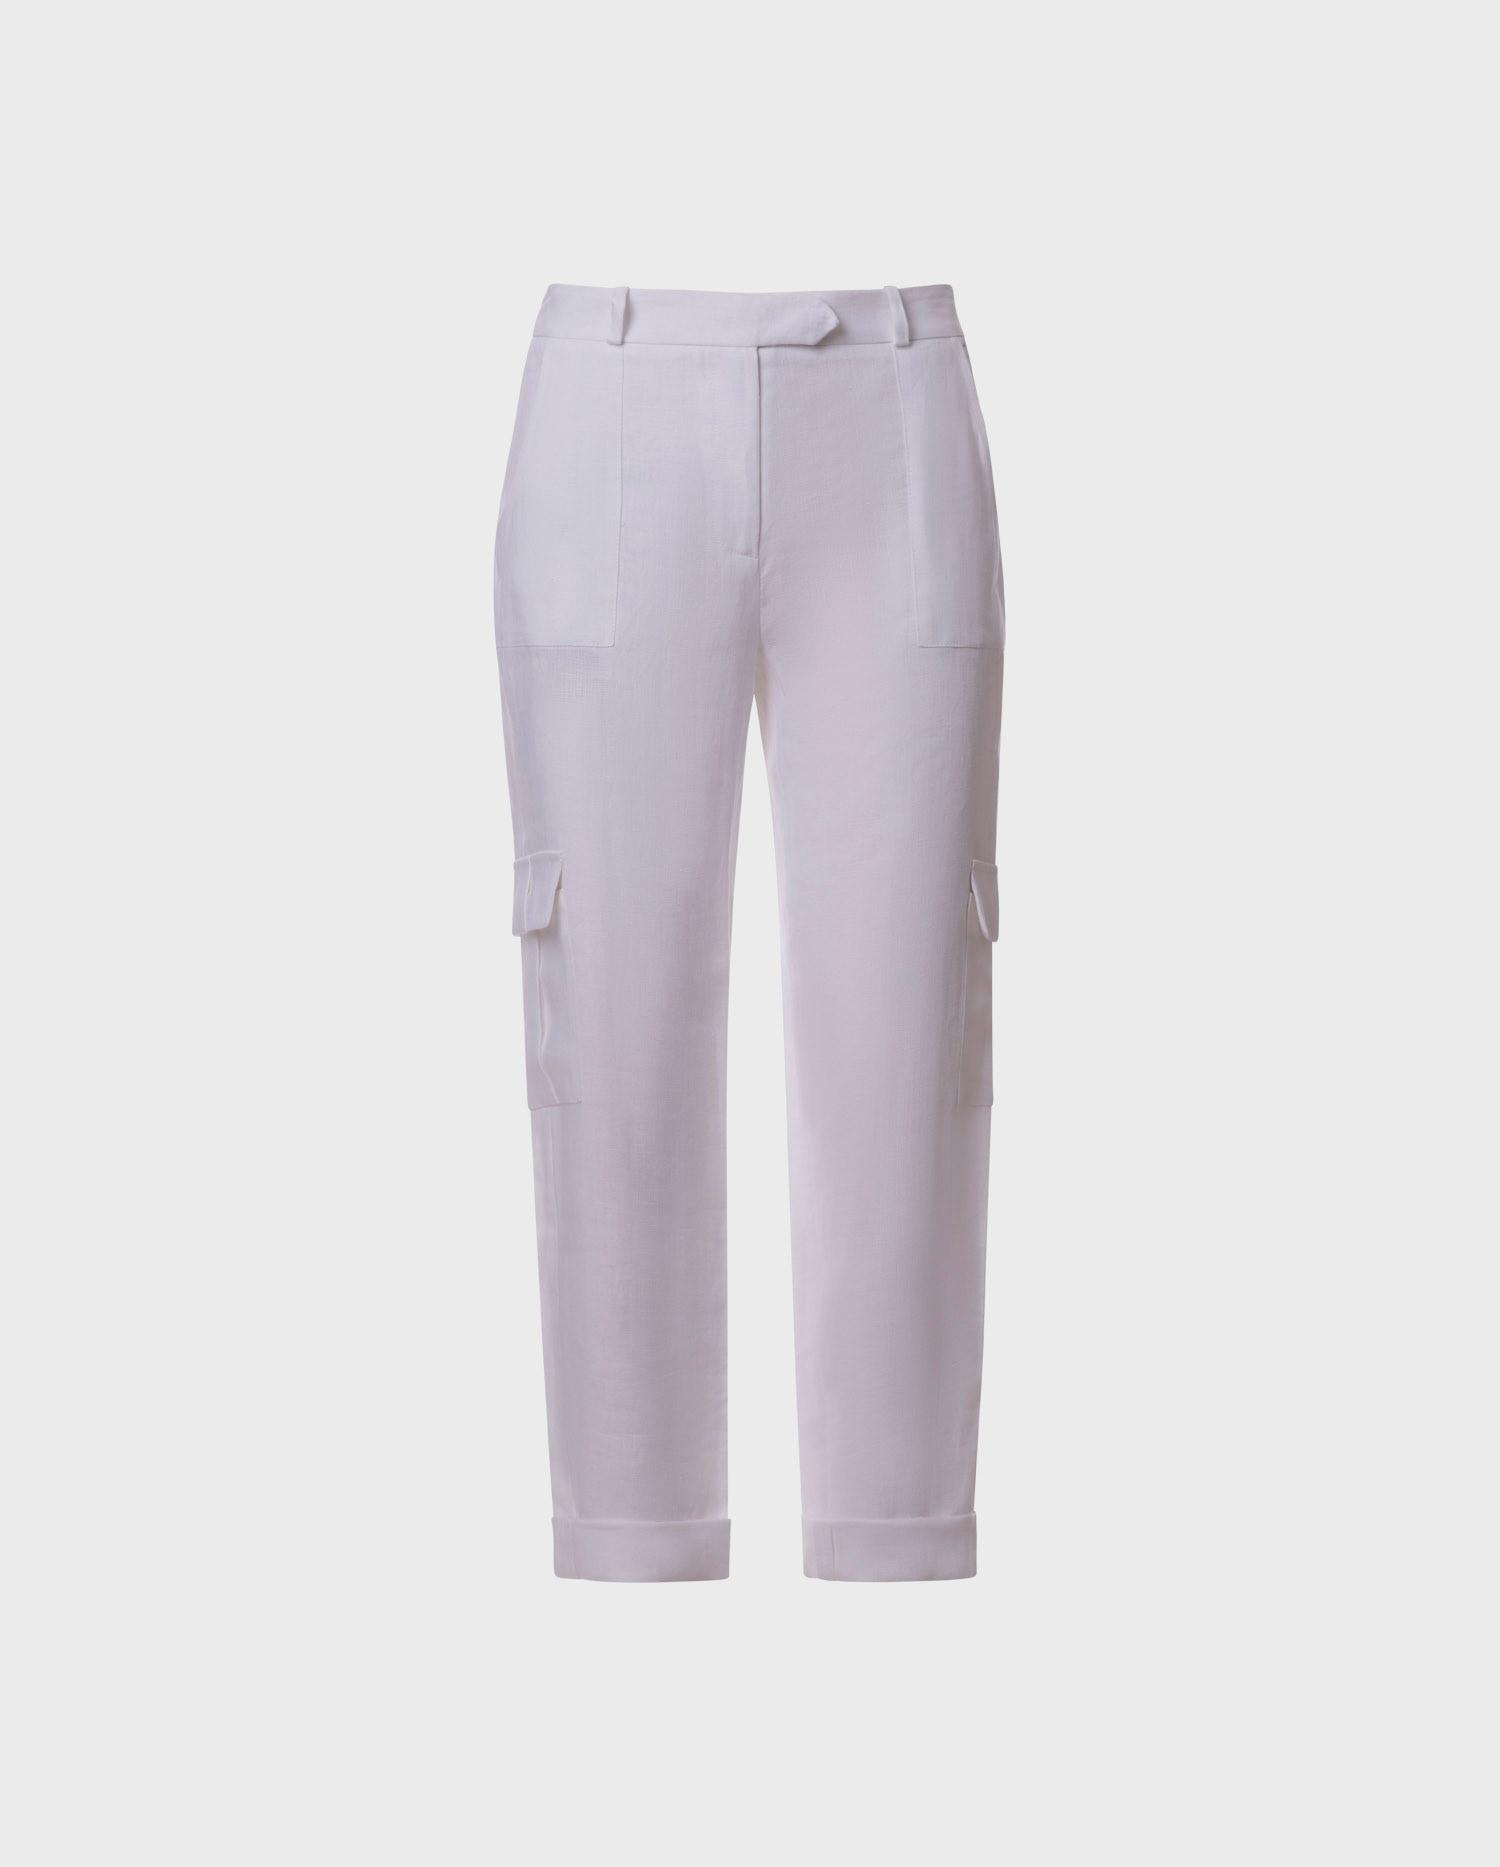 Comfort and chic come together with the new white white linen CASTAWAY pants from designer Anne Fontaine